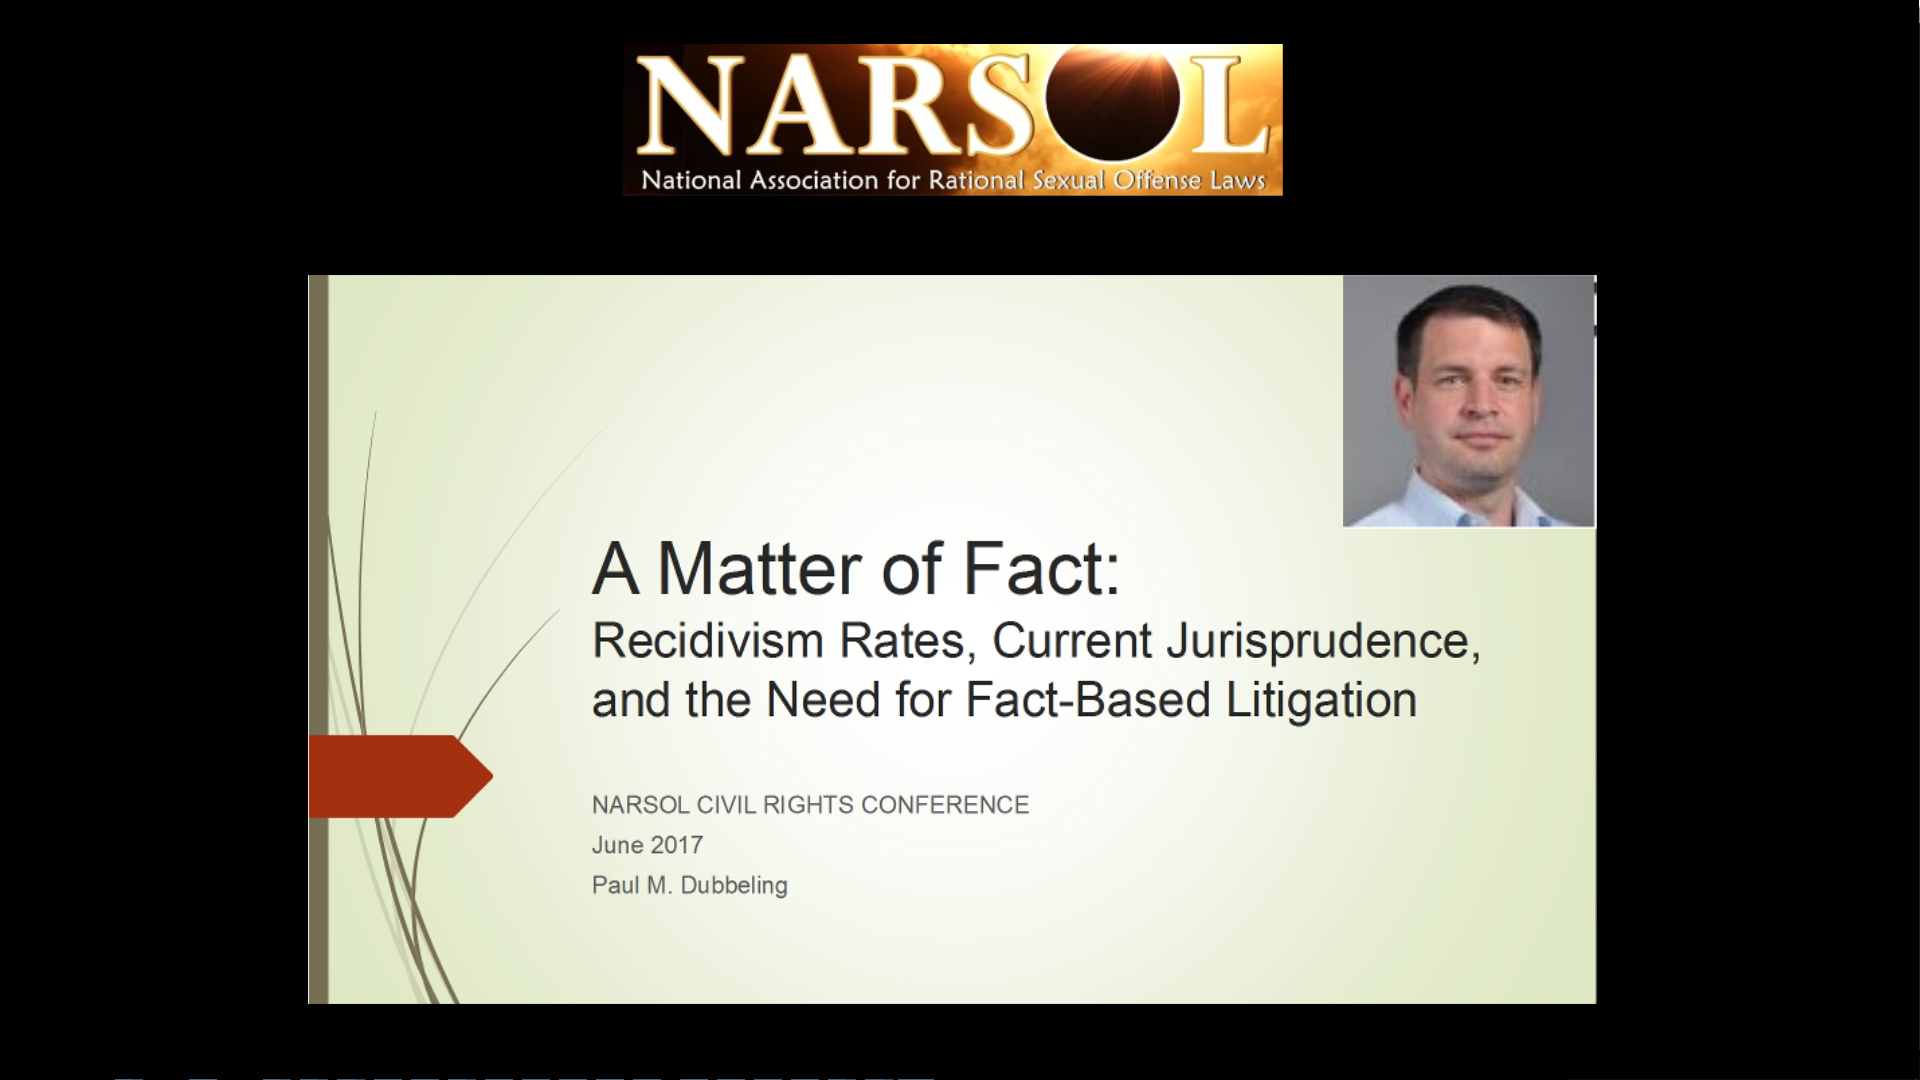 Paul Dubbeling – A Matter of Fact: Recidivism rates and the need for fact-based litigation